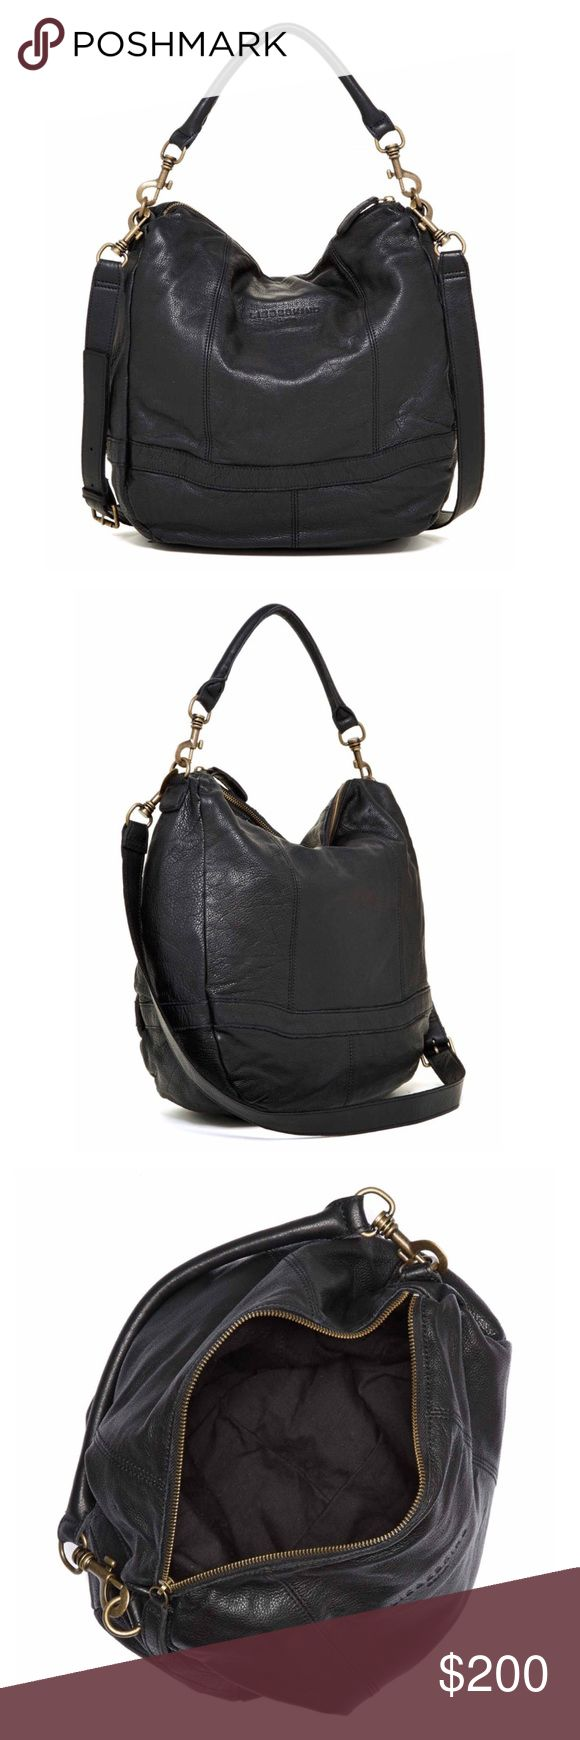 1-DAY SALE! Liebeskind Ramona Leather Shoulder Bag Love the MBMJ Hillier I've got listed?! This bag is insanely similar, both my leathery loves. Of course, all MBMJ bags are well worth their ticket price, that leather won't quit. And their fit is always impeccable. My Liebeskind love? Their leather is smooth, soft, and yummy. I'm having a tough time with this, but feel I have two exact bags. MBMJ is much easier to come by or replace, so letting go of this here, I've got some thinking to do…